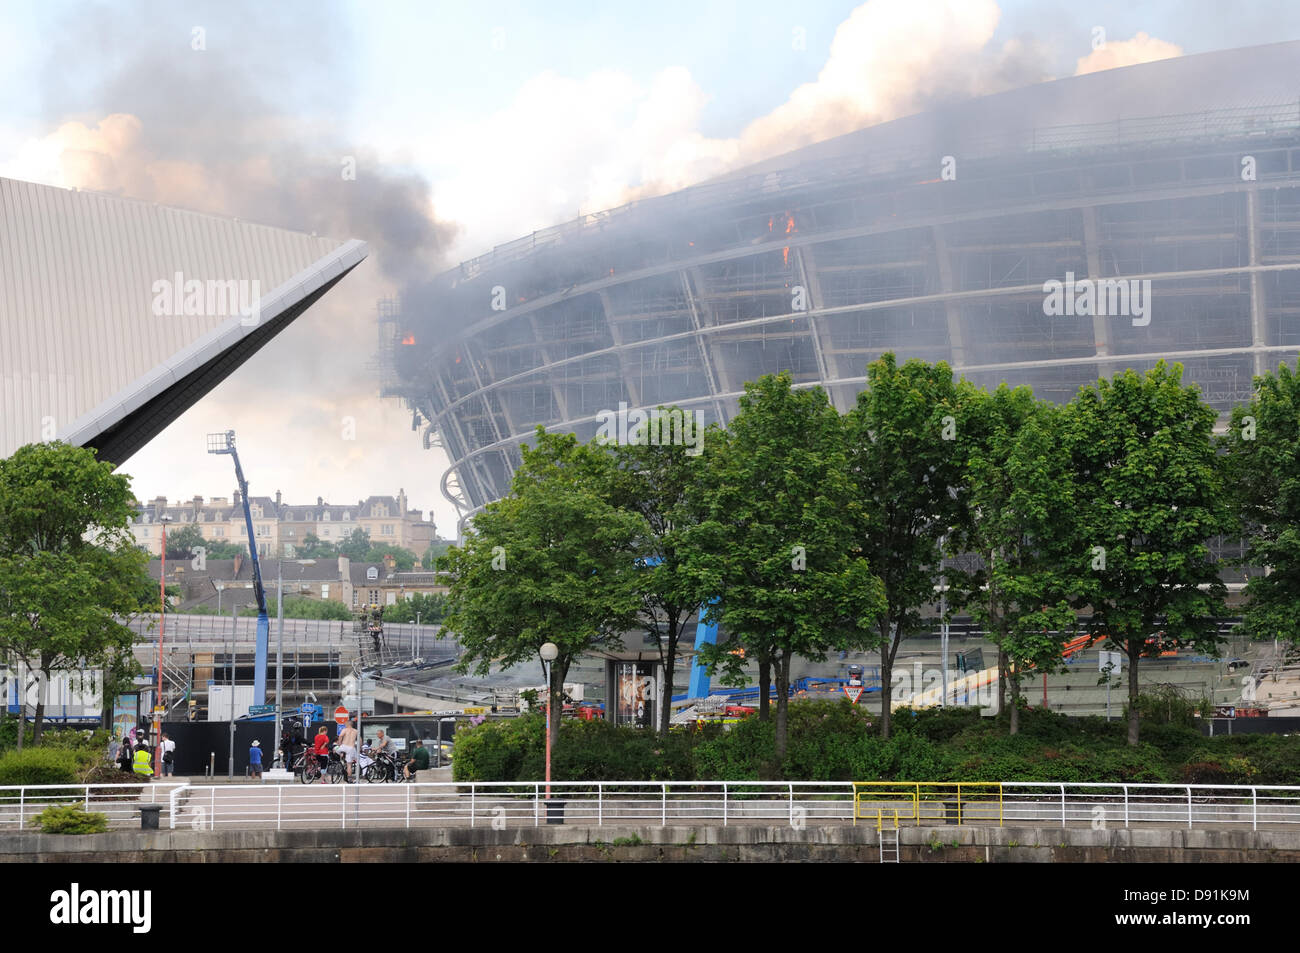 Hydro, Glasgow, Scotland, UK. 8th June 2013. Fire takes a firm hold at the unfinished Hydro arena. Fire spread through Stock Photo